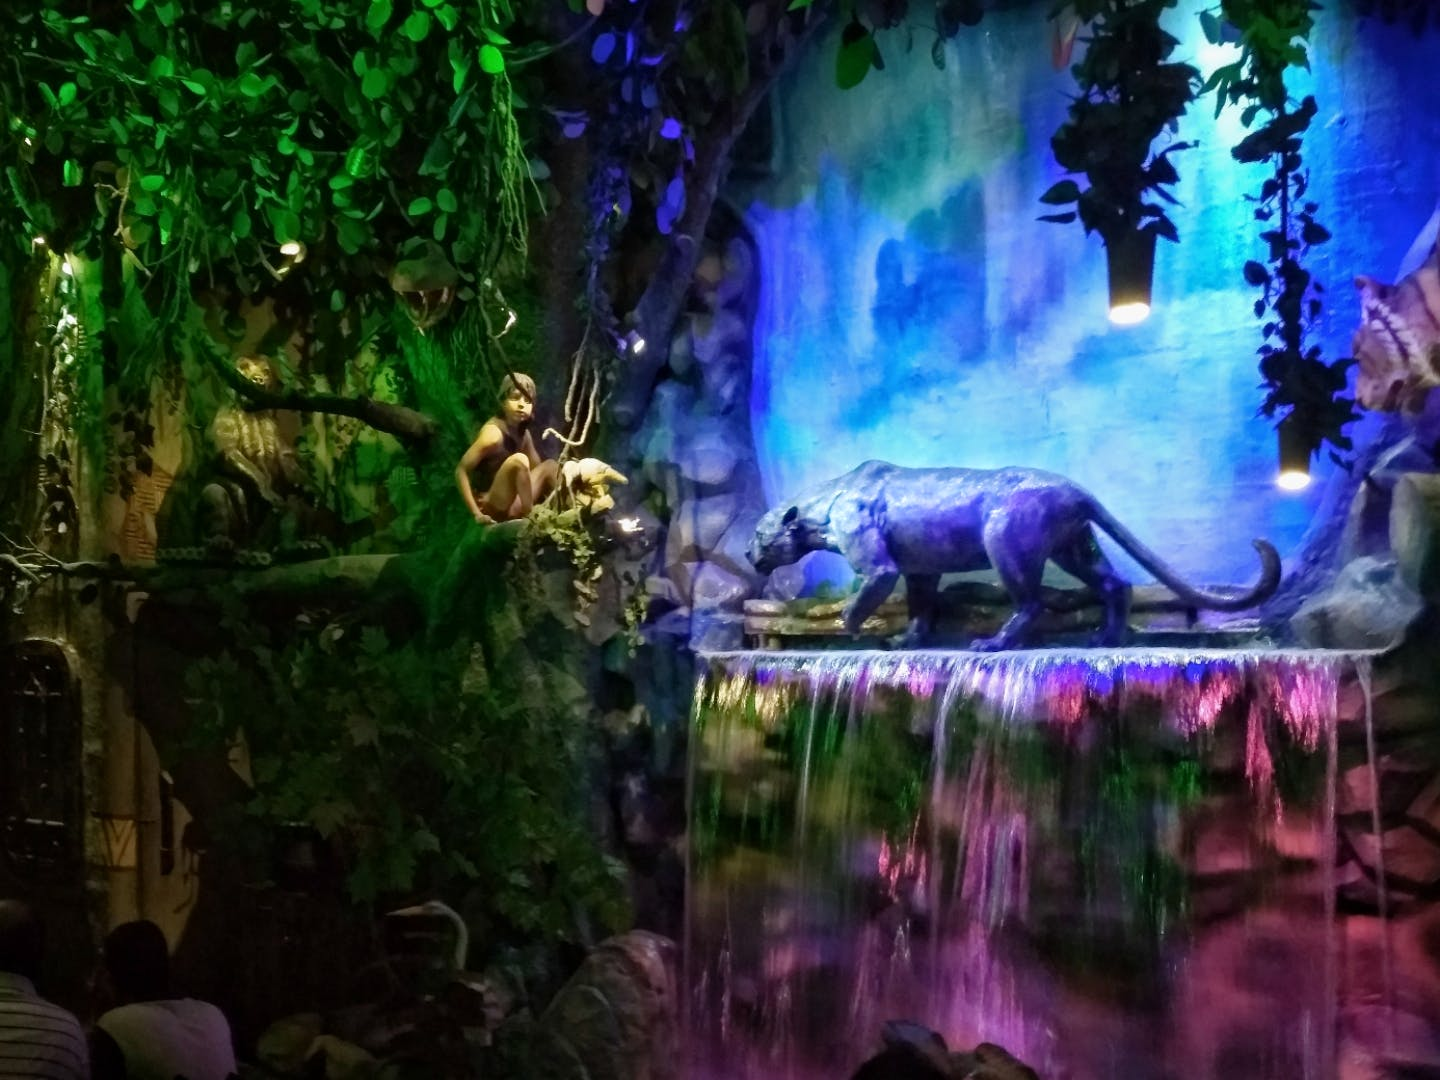 Head To This Jungle-Themed Eatery For Delish Food & Quirky Decor